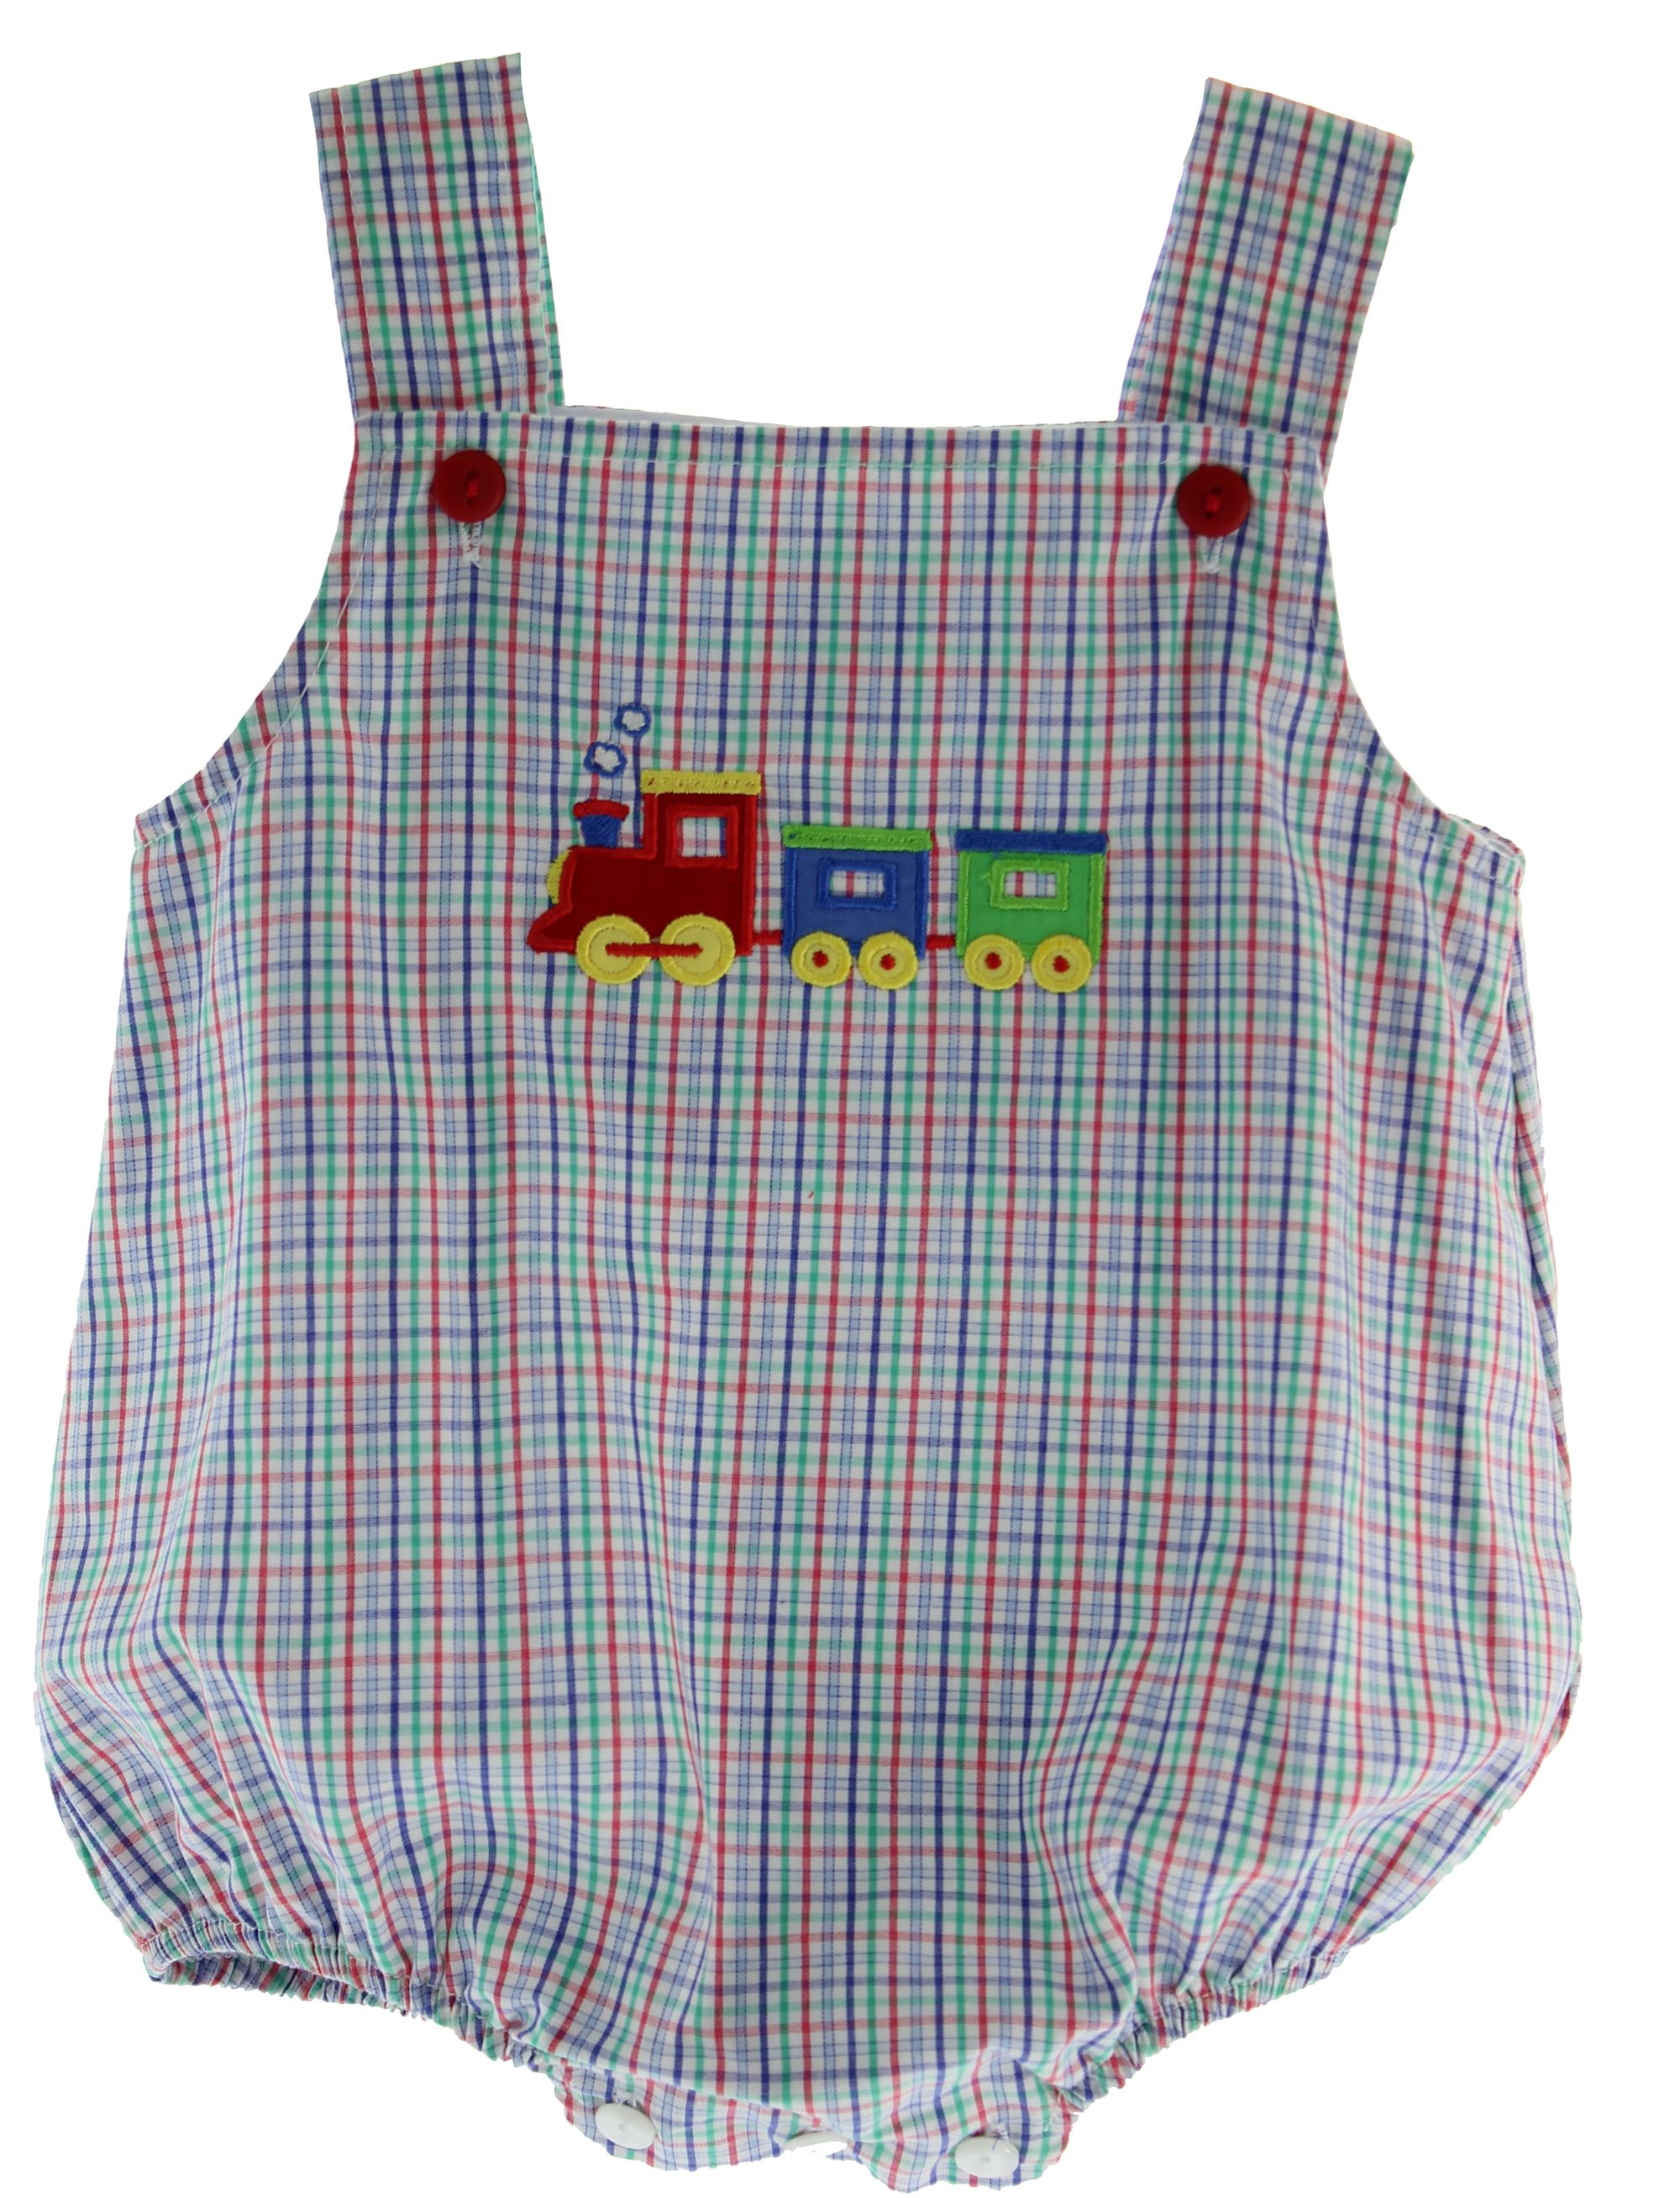 Blog - Hiccups Childrens Boutique